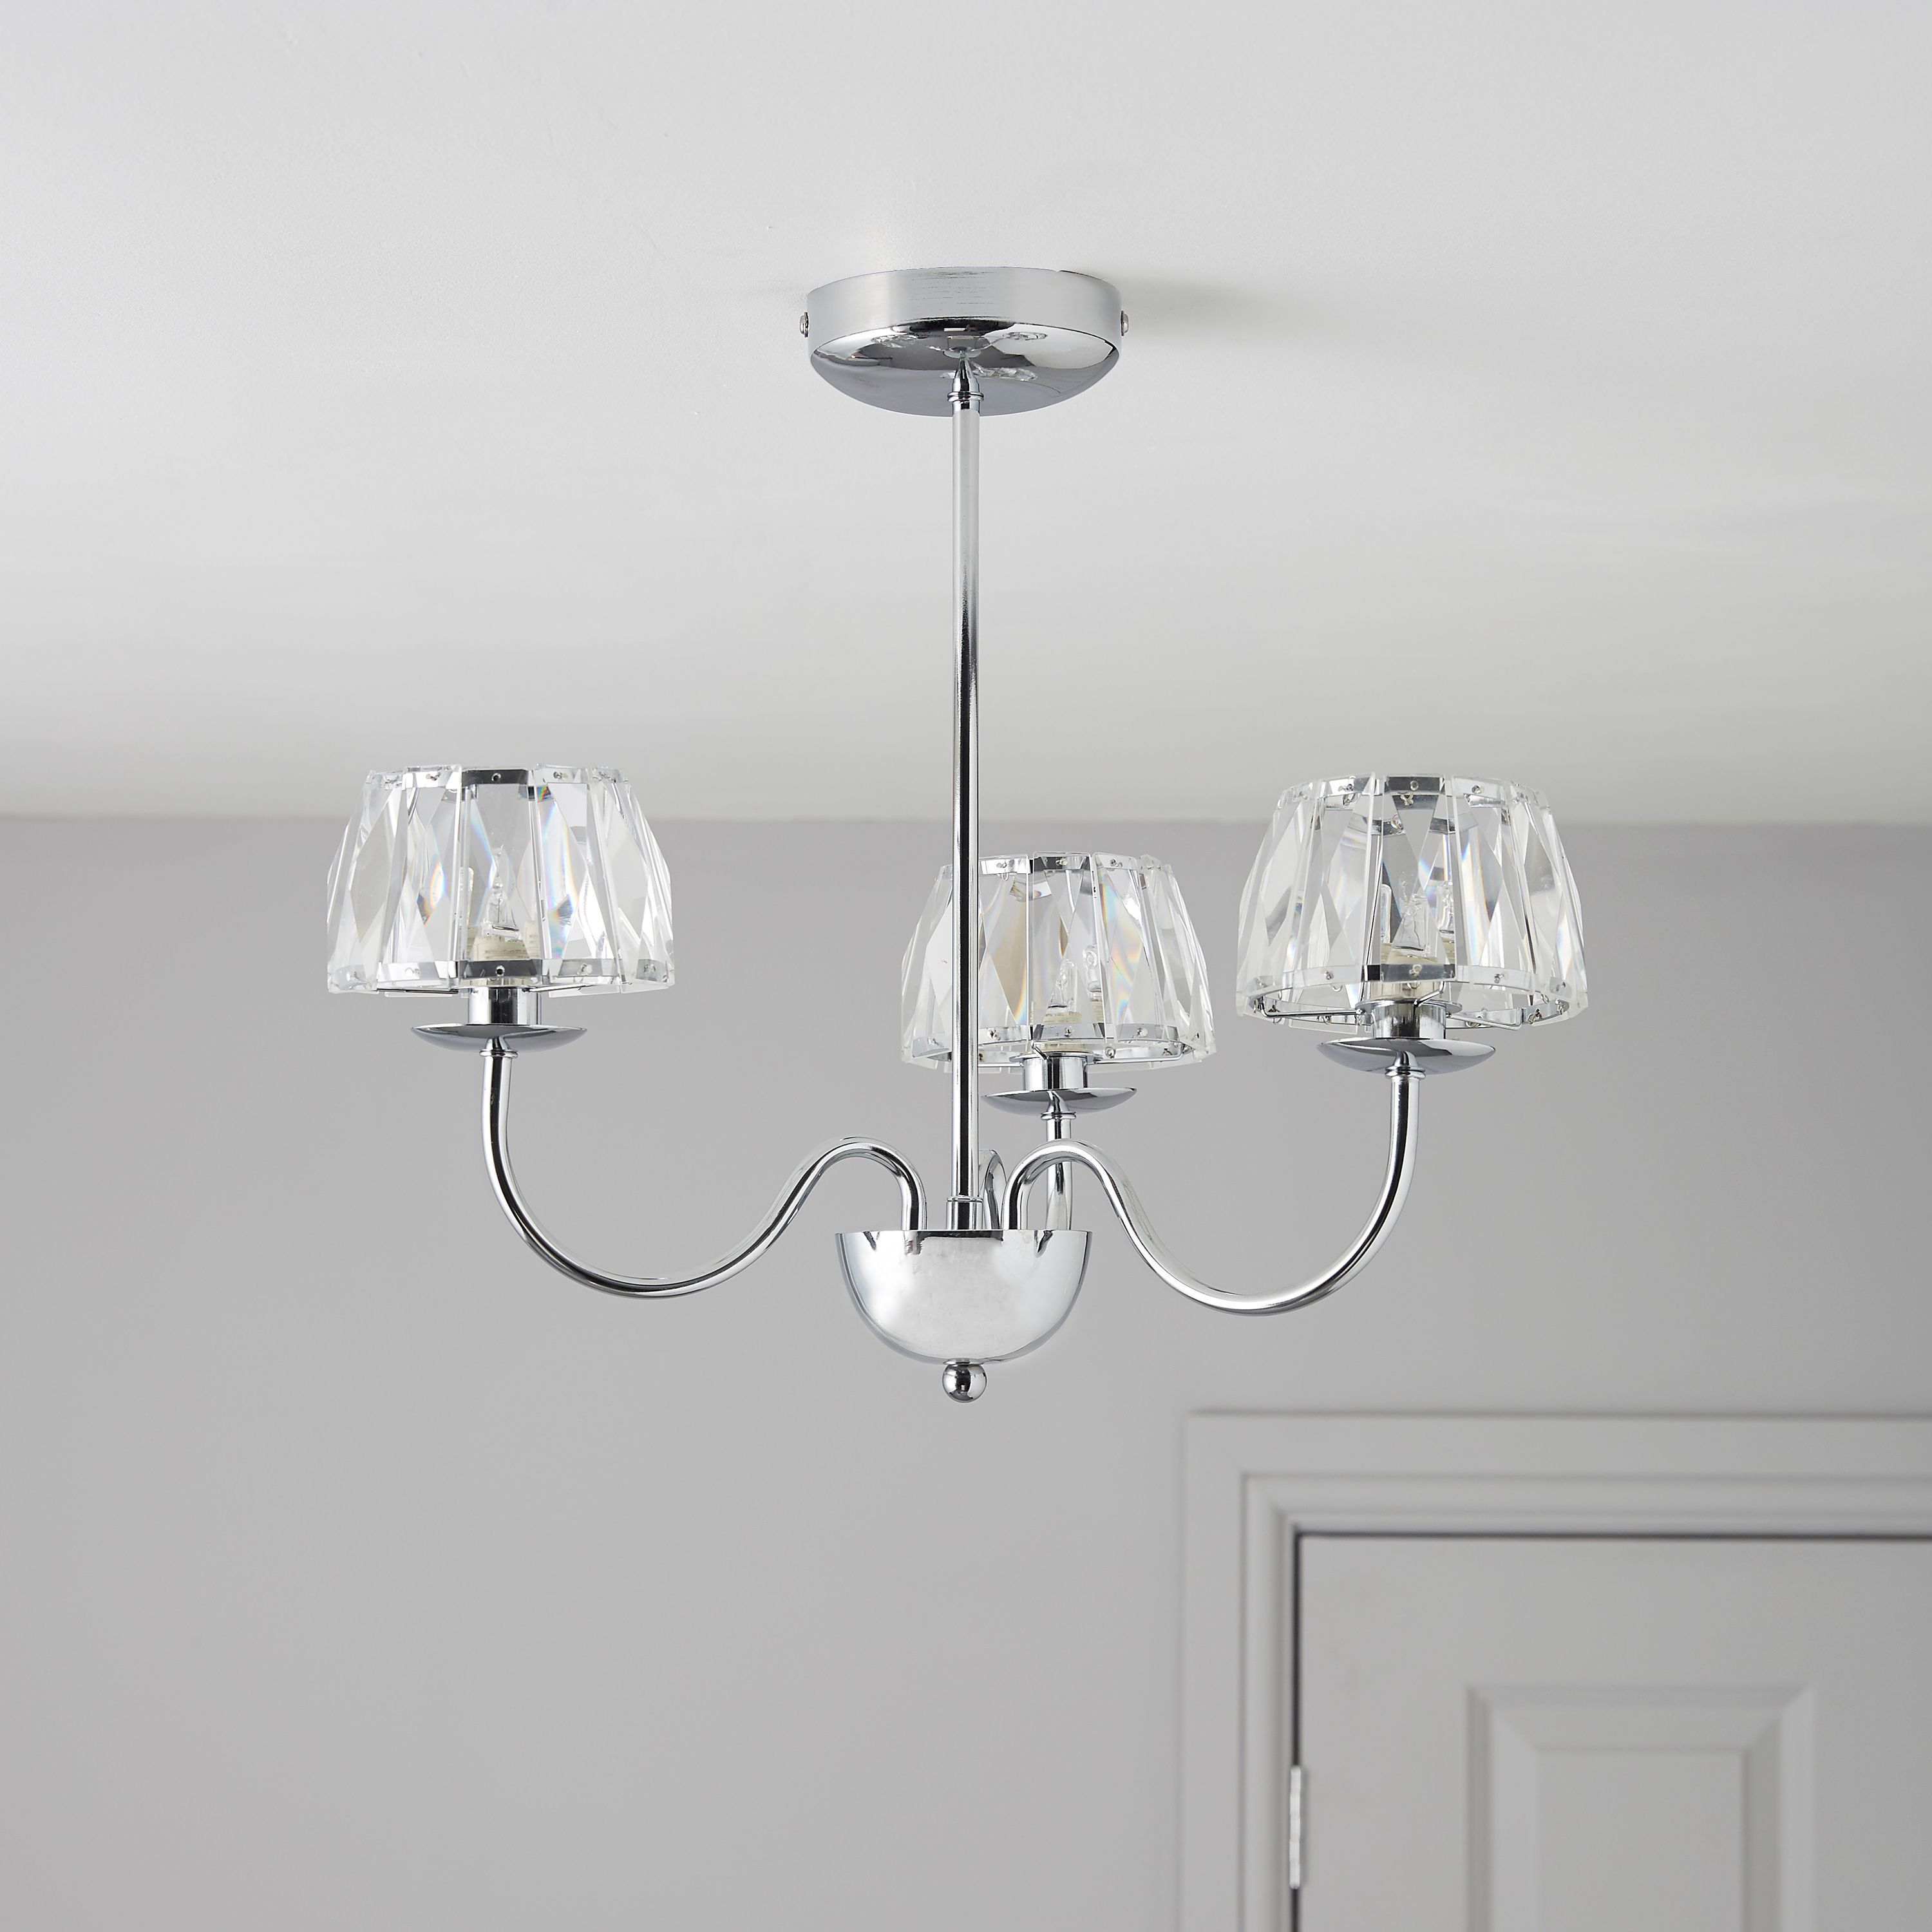 Waldor faceted glass chrome effect 3 lamp pendant ceiling light waldor faceted glass chrome effect 3 lamp pendant ceiling light departments diy at bq aloadofball Image collections